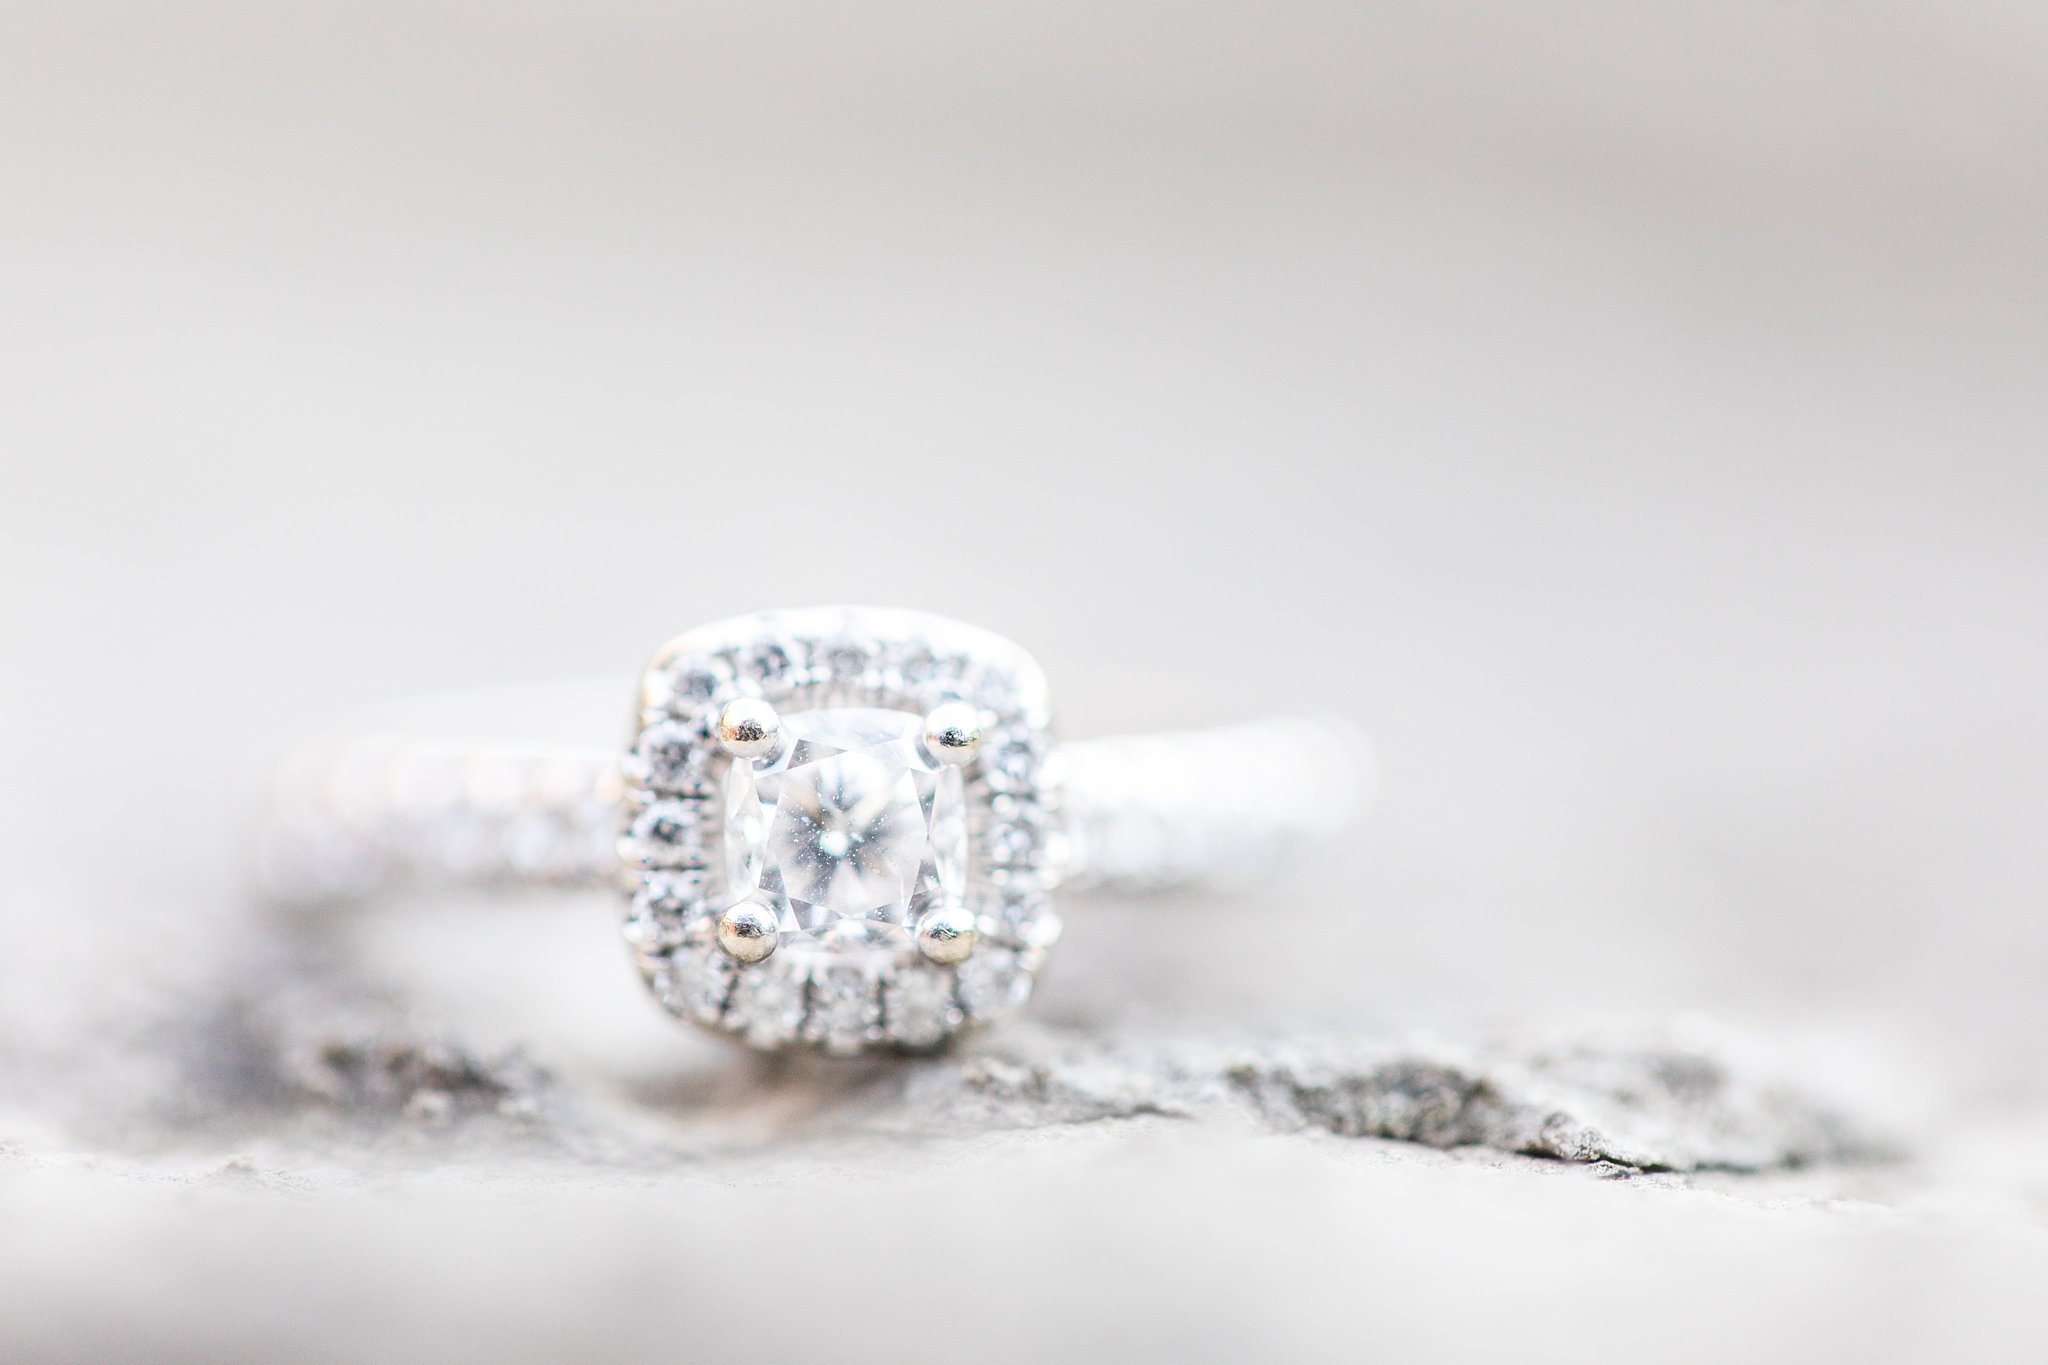 Square halo diamond engagement ring, Wakefield Mill Engagement Photos, Amy Pinder Photography